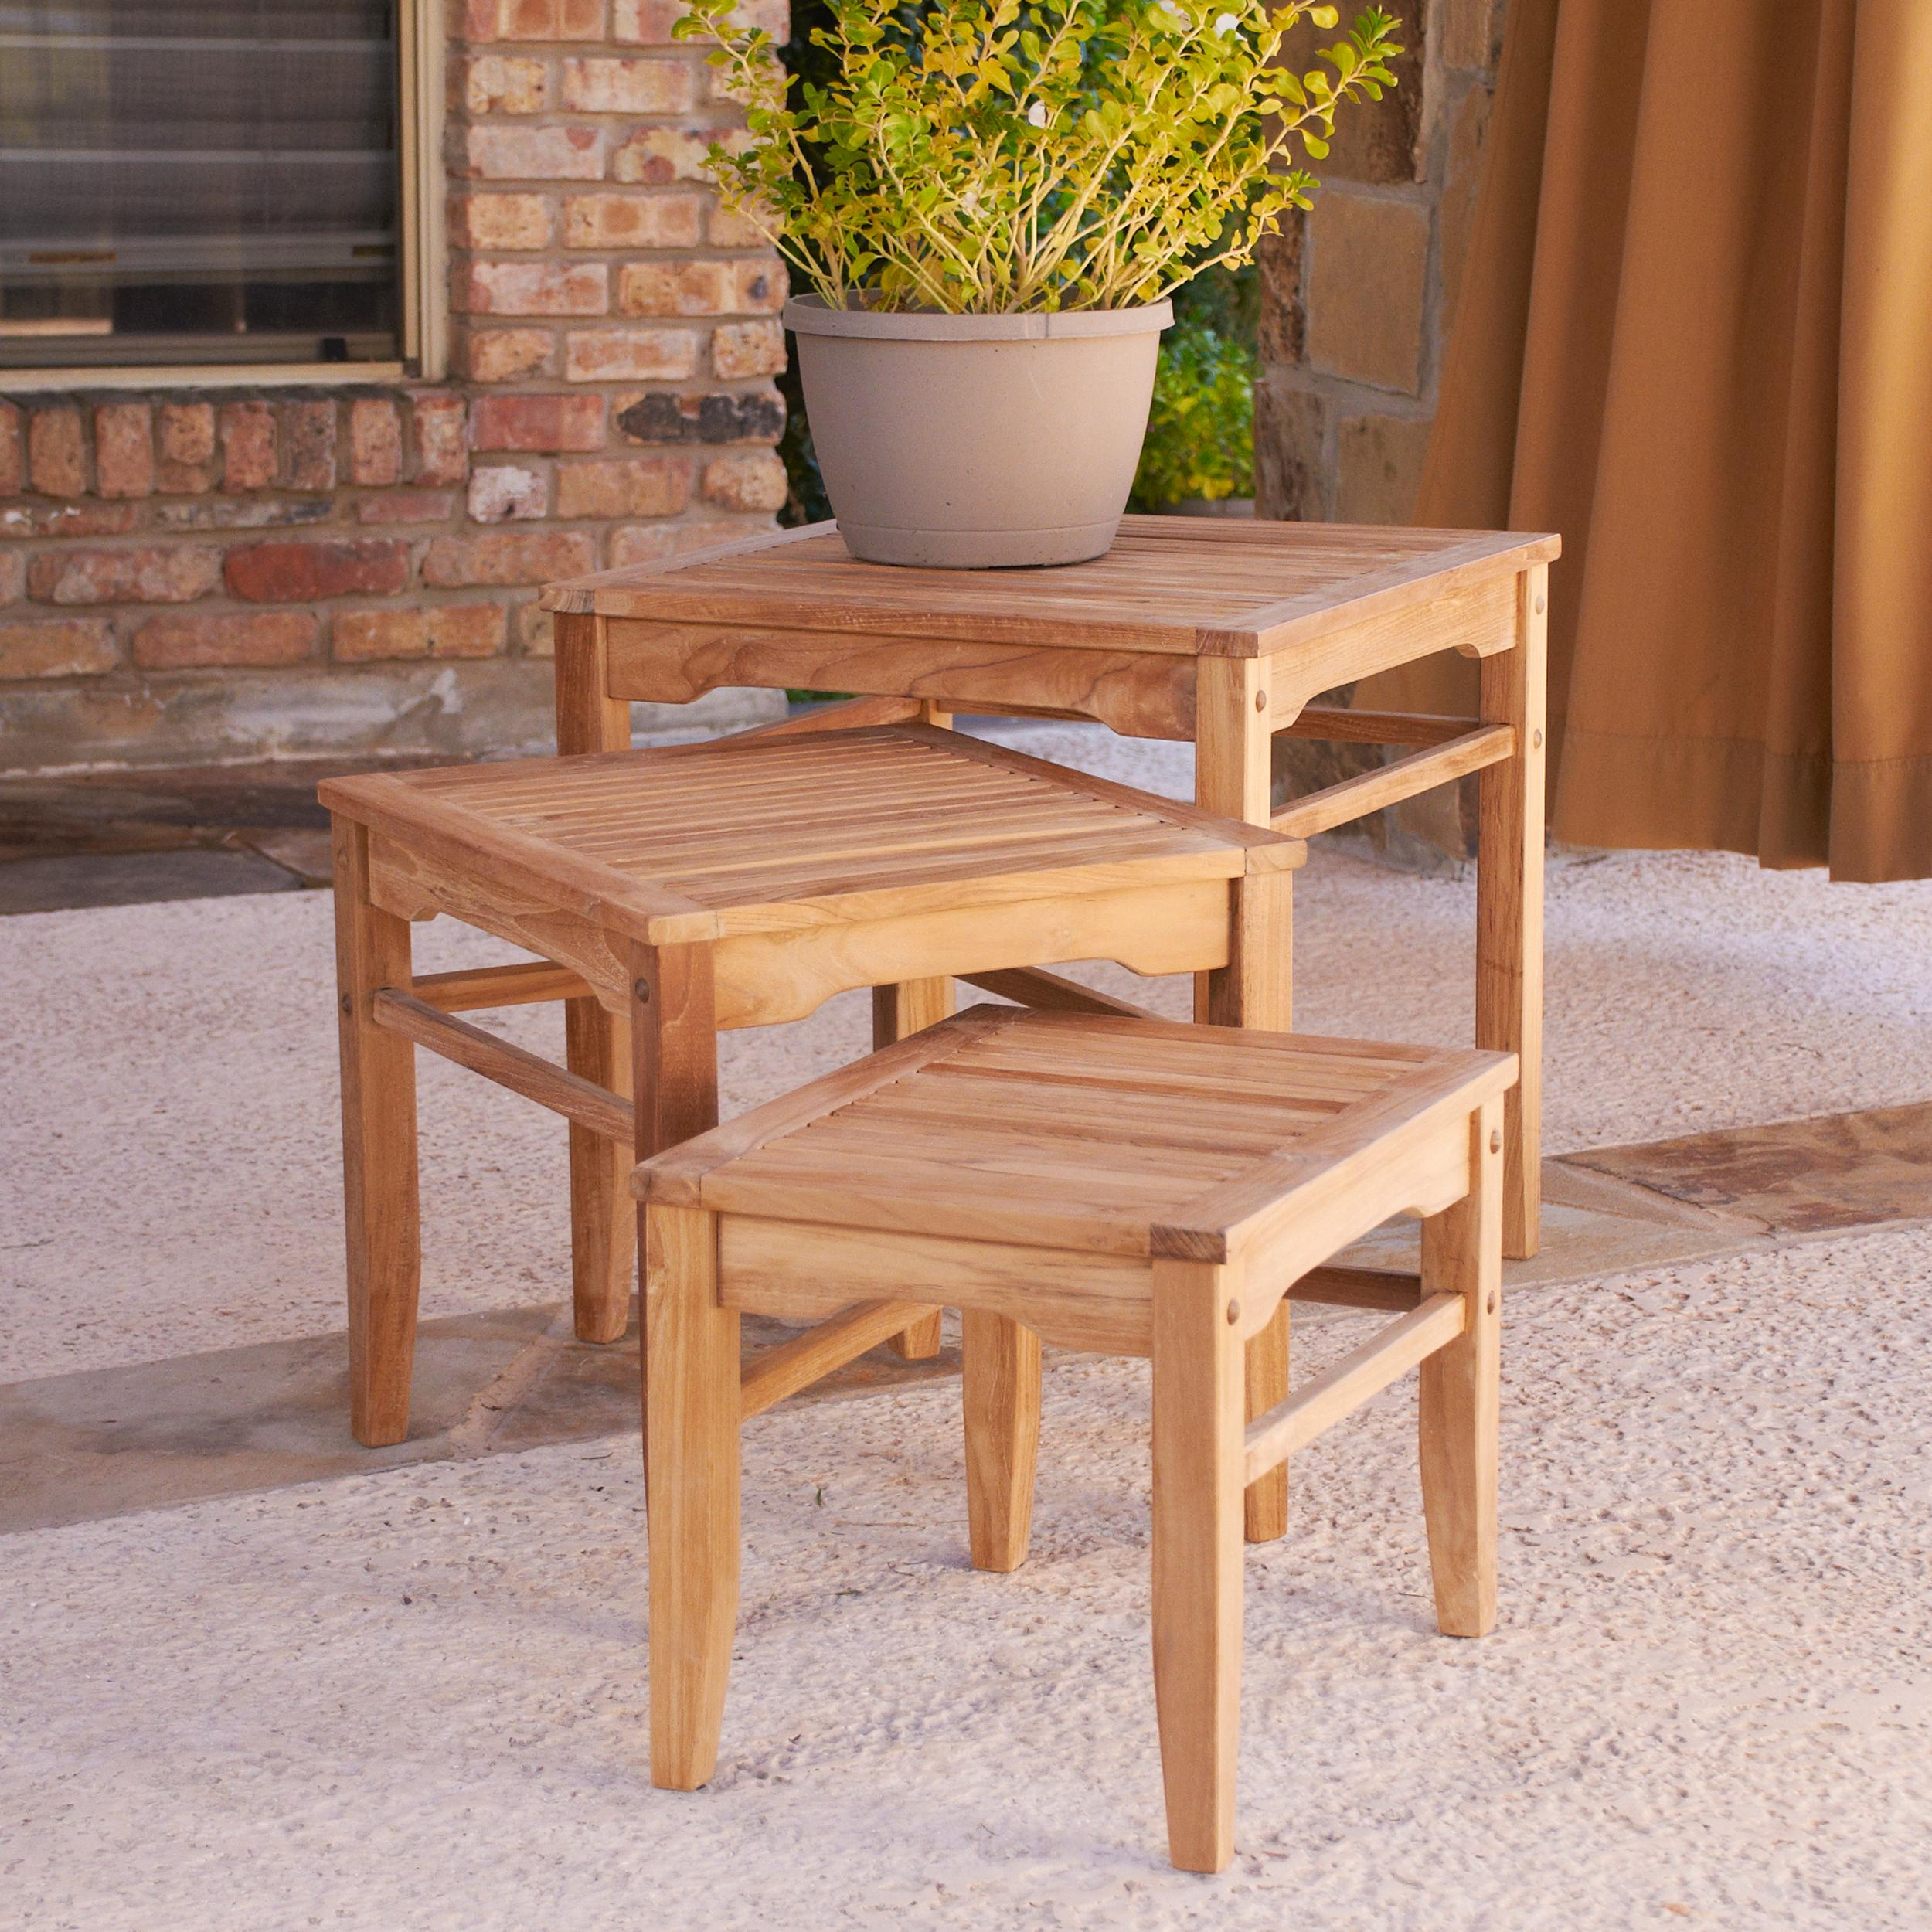 View larger & Amazon.com : Southern Enterprises Teak Wood Nesting Table Set of 3 ...